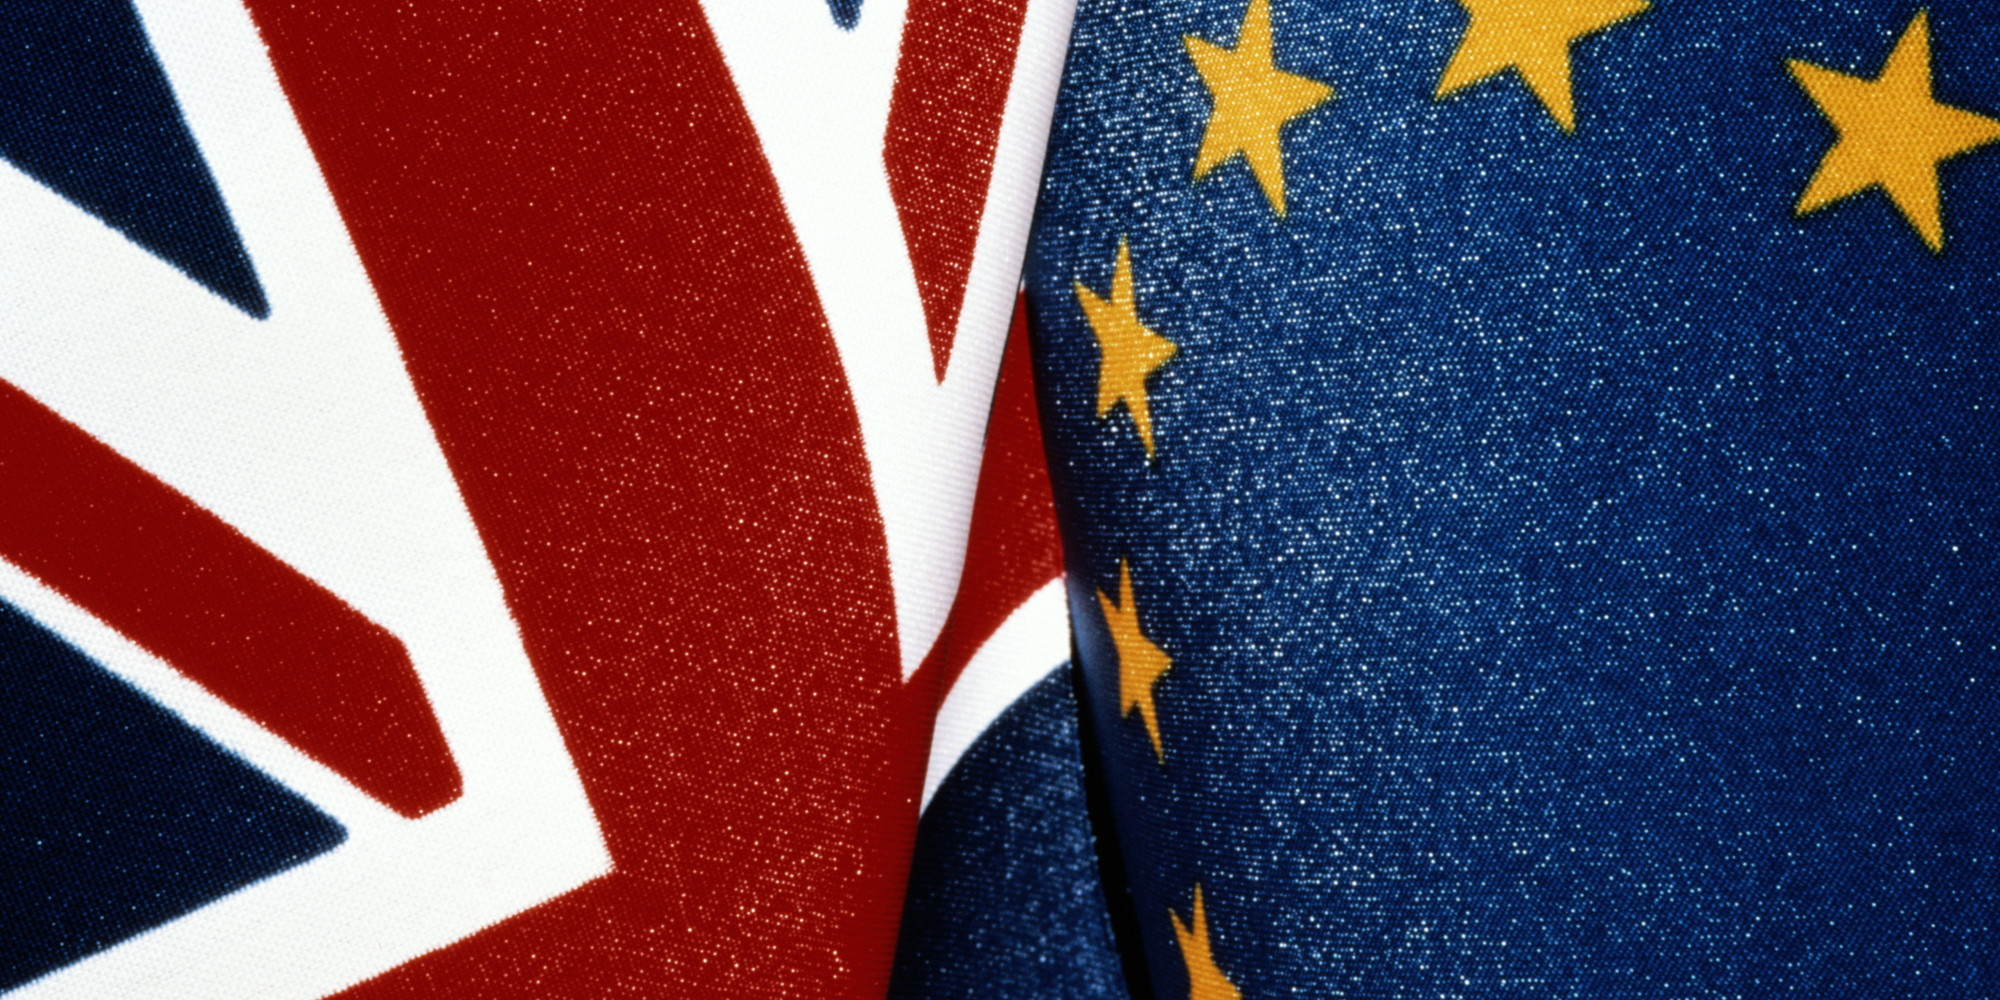 britain and the eu Find all the latest news and expert analysis of the eu referendum in the uk breaking stories, opinion poll results and comment on the vote.